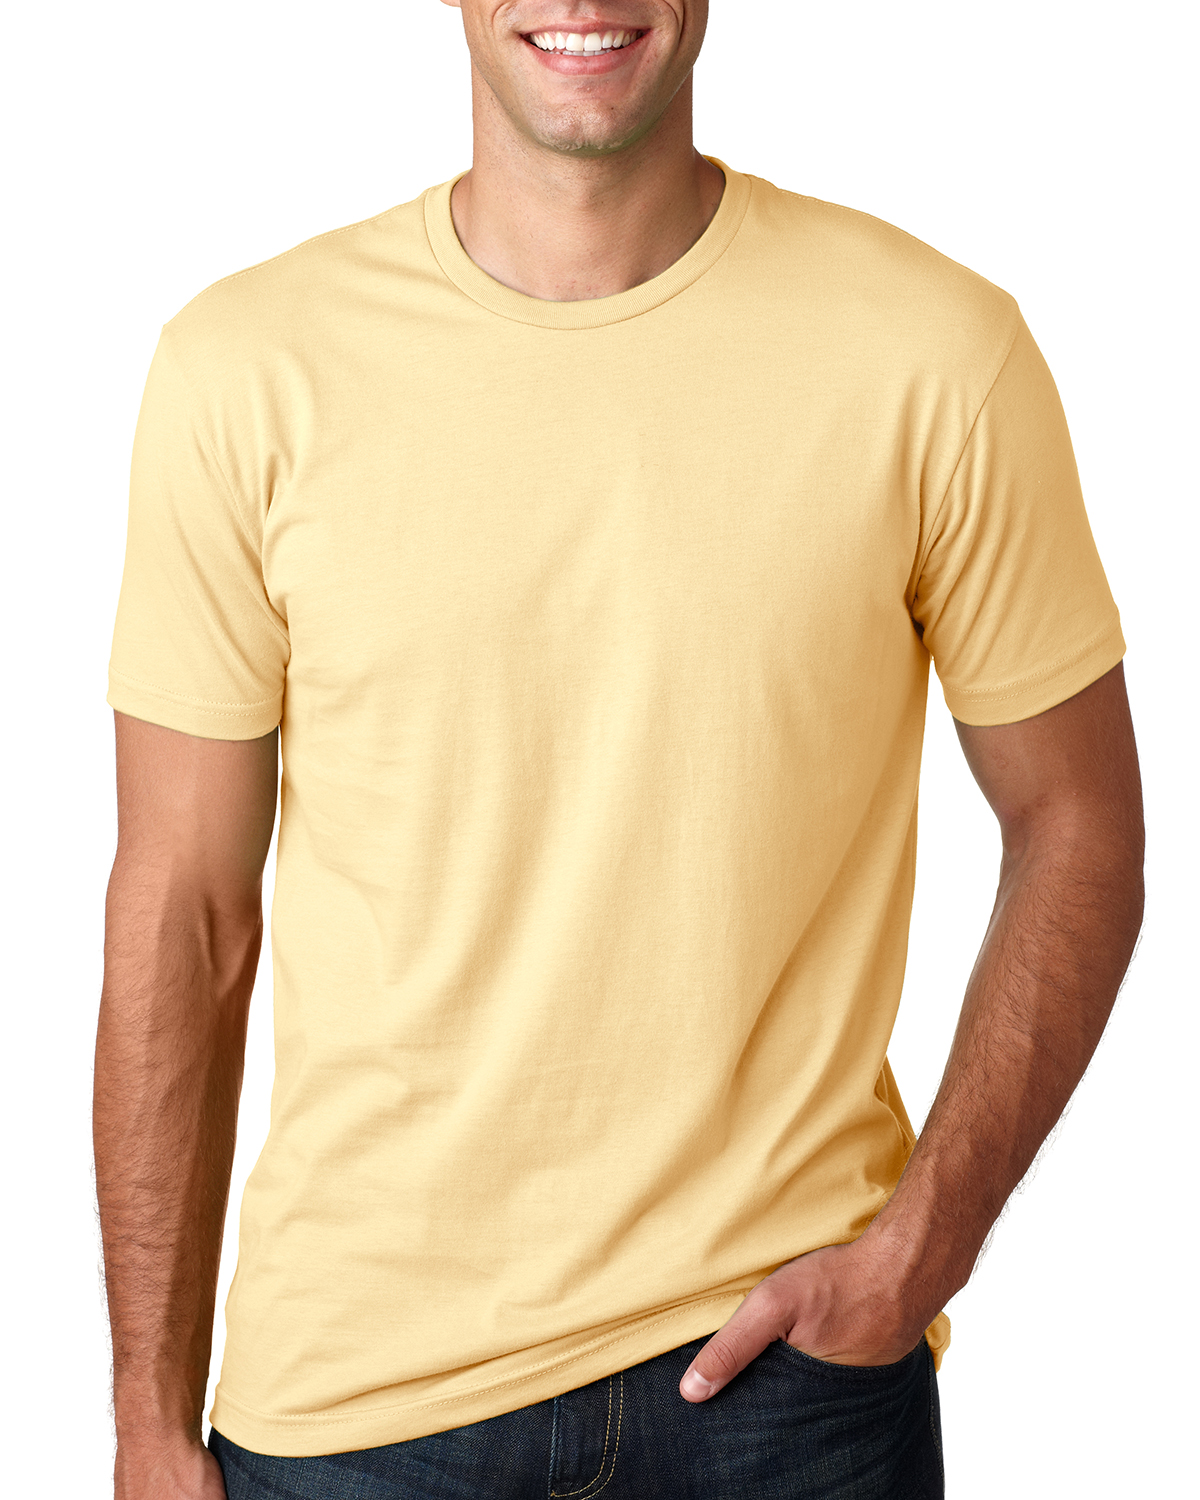 Next Level Apparel Premium Crew Neck T-Shirt Mens Soft Fitted Basic Tee 3600